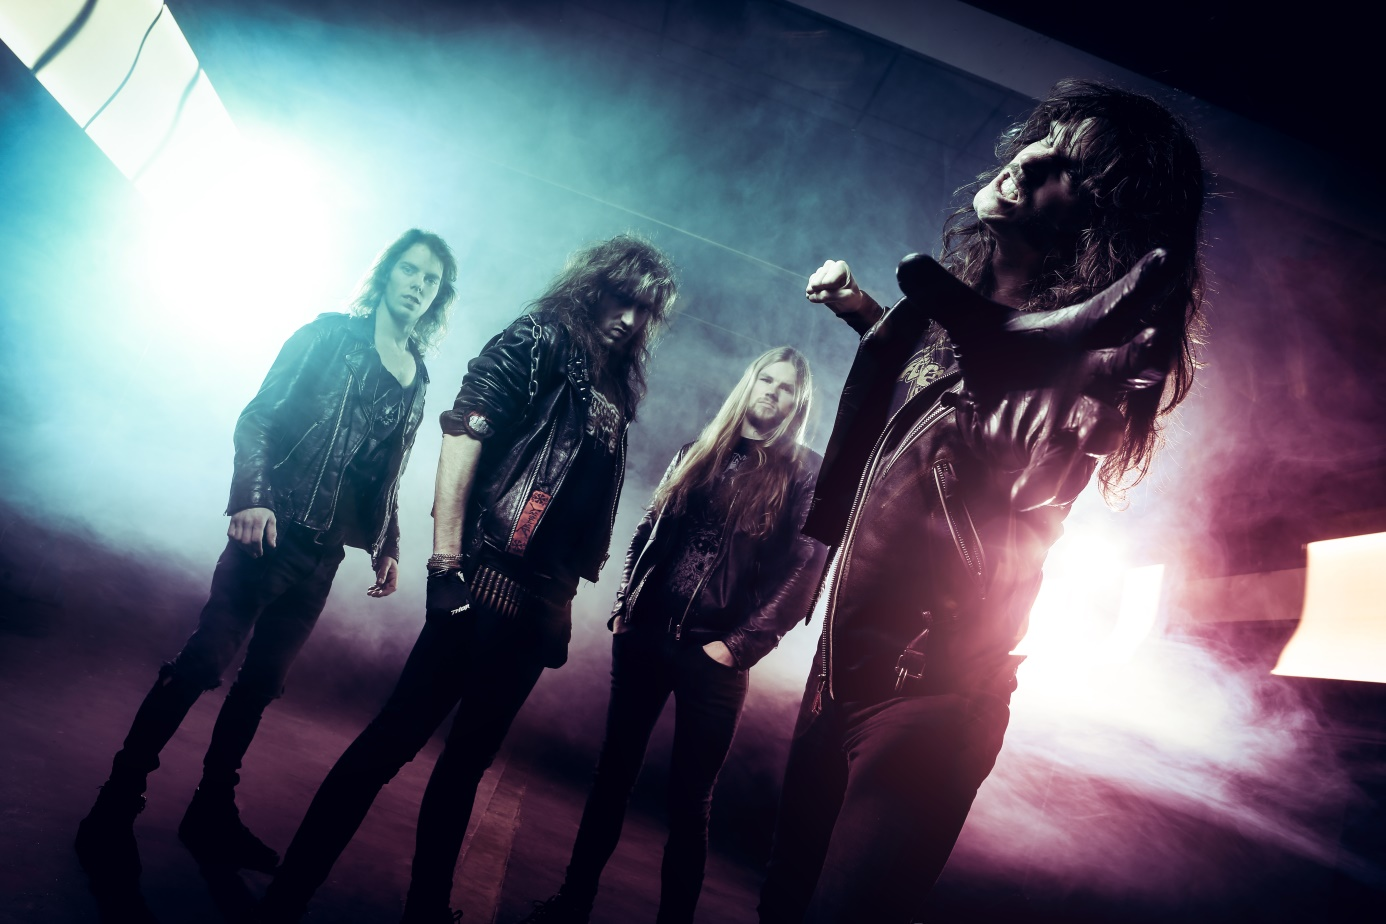 Evil Invaders - Band picture 2